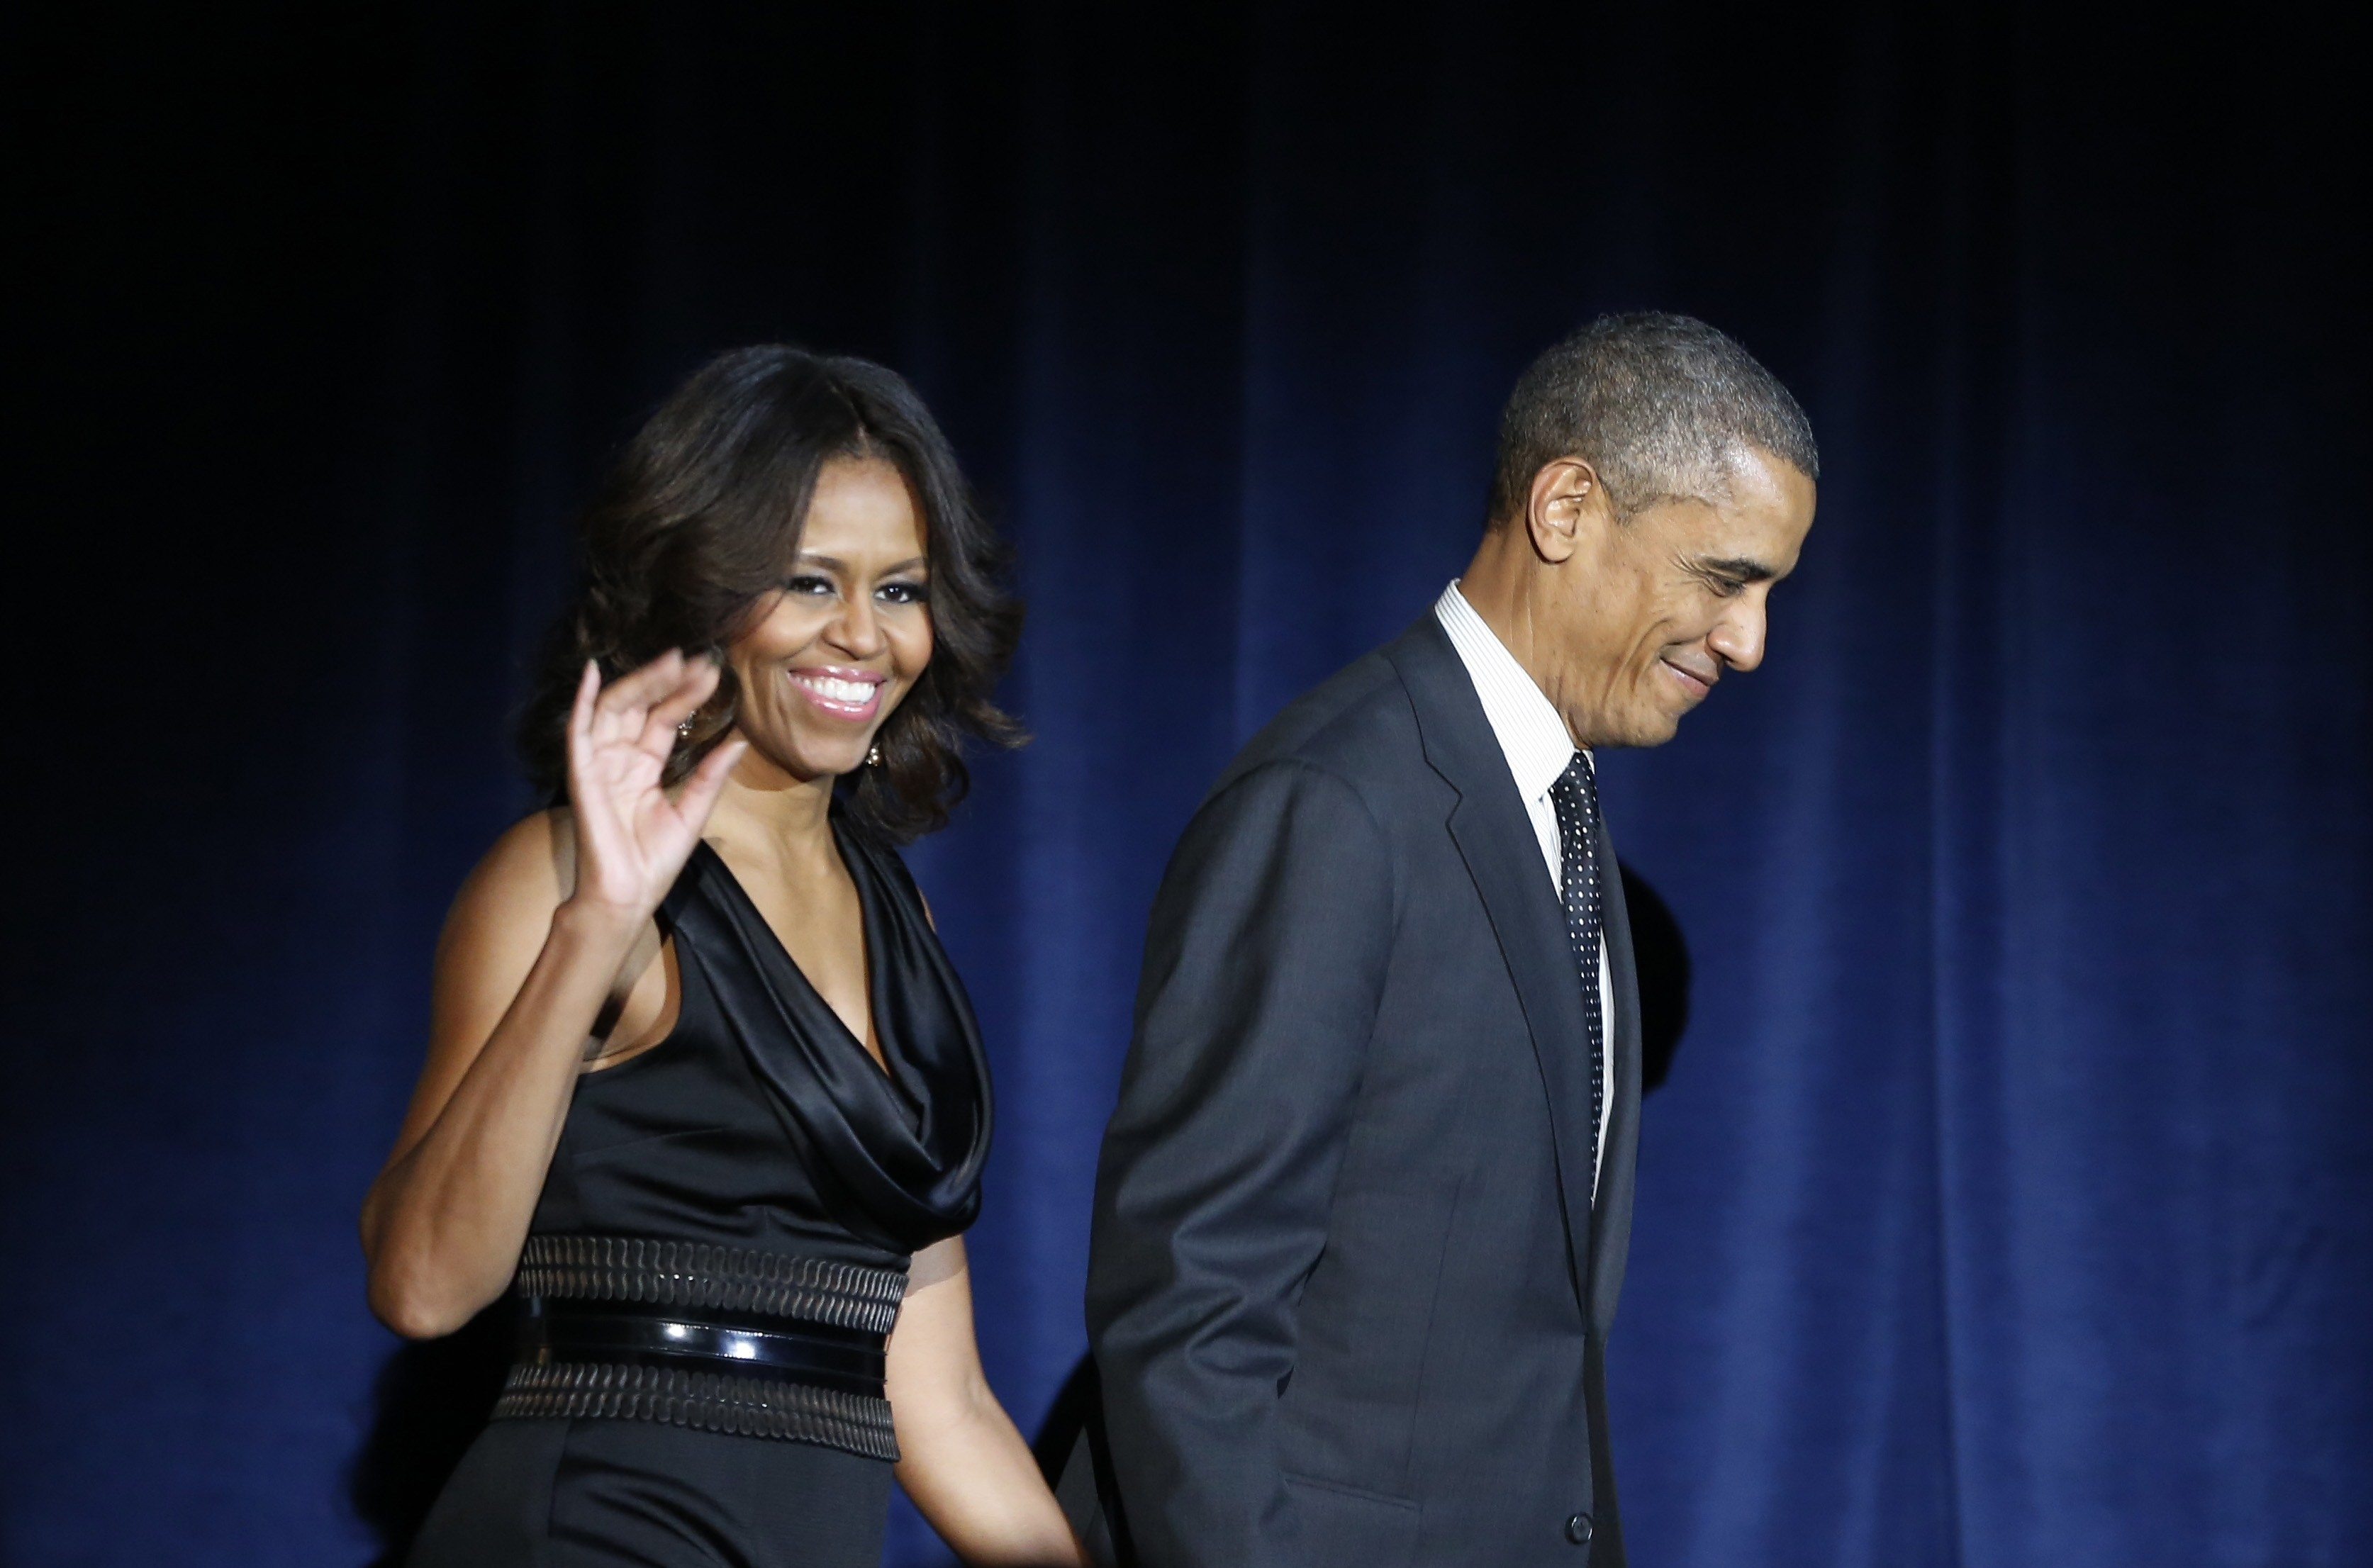 President Obama Says He Appreciates His Gorgeous Wife's Curves